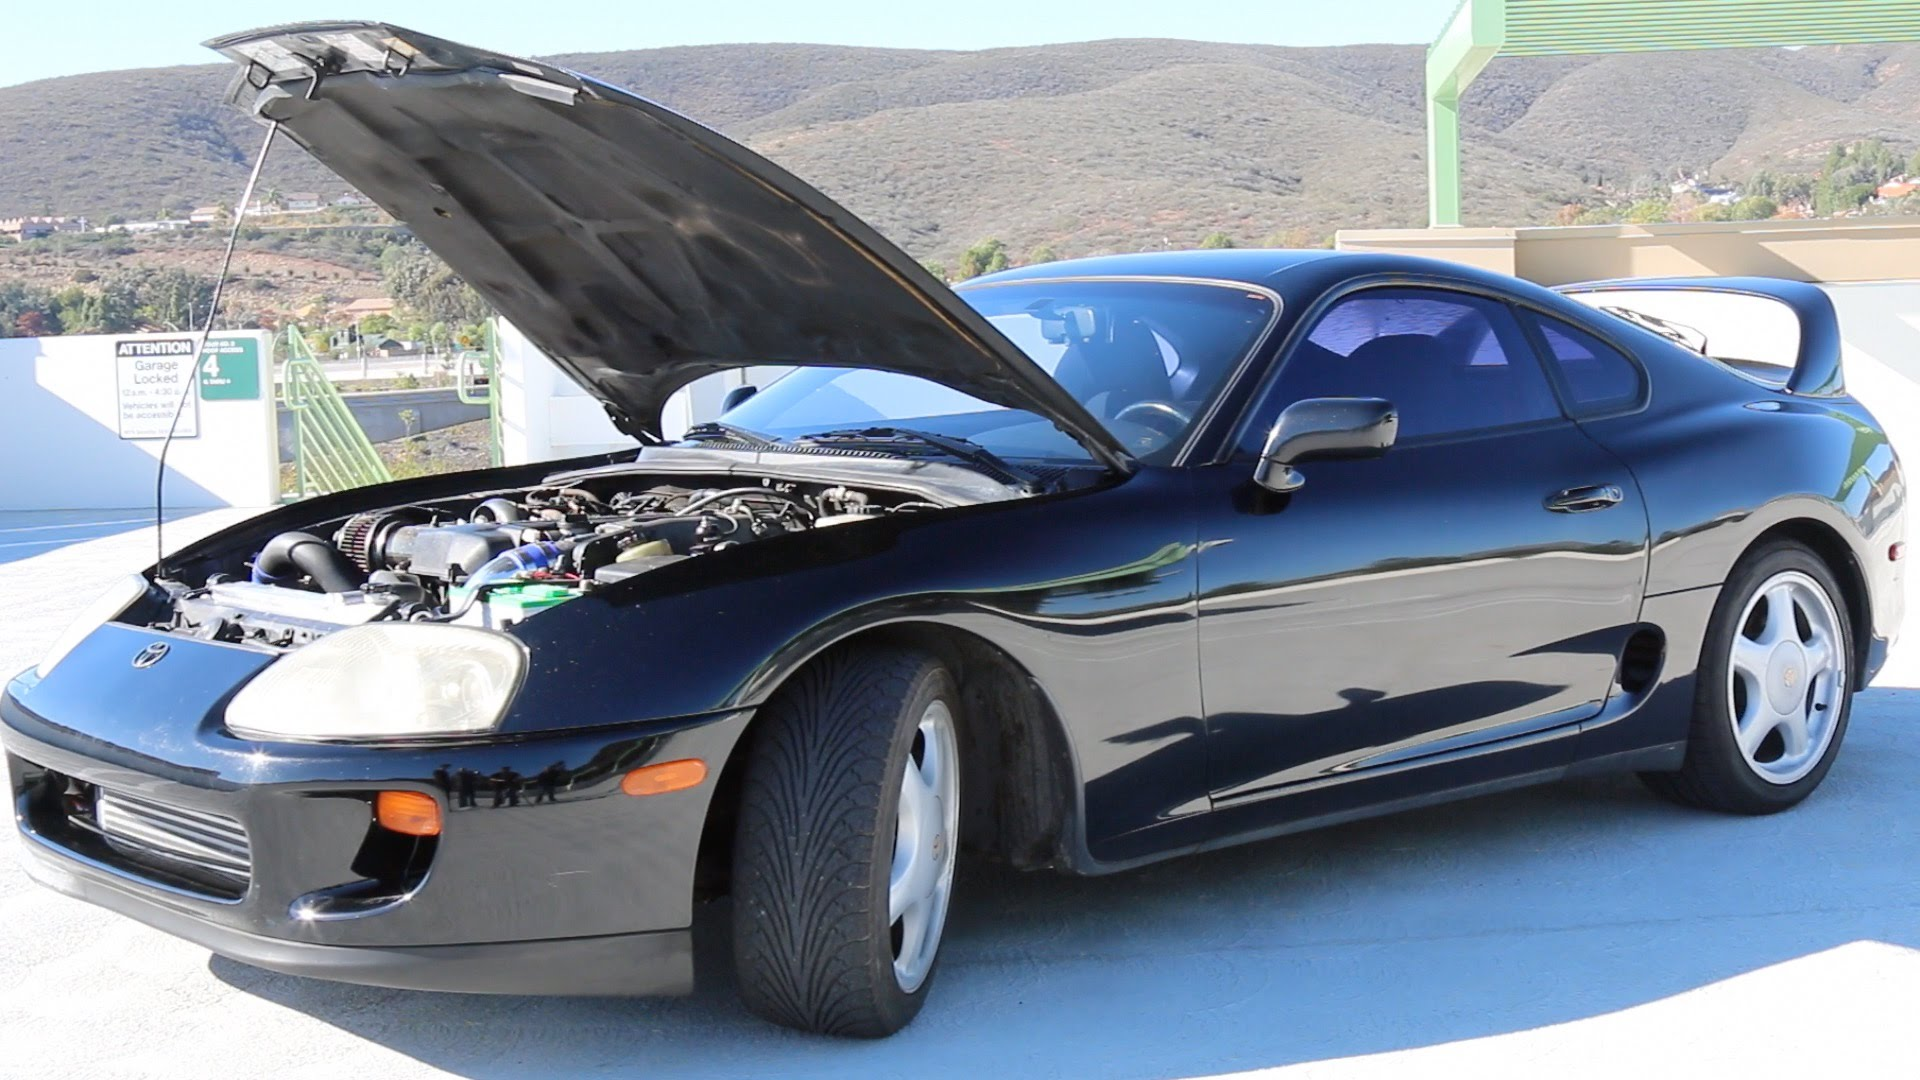 This 500Hp Turbo Toyota Supra Is e Ride That Is Sure To Give Any